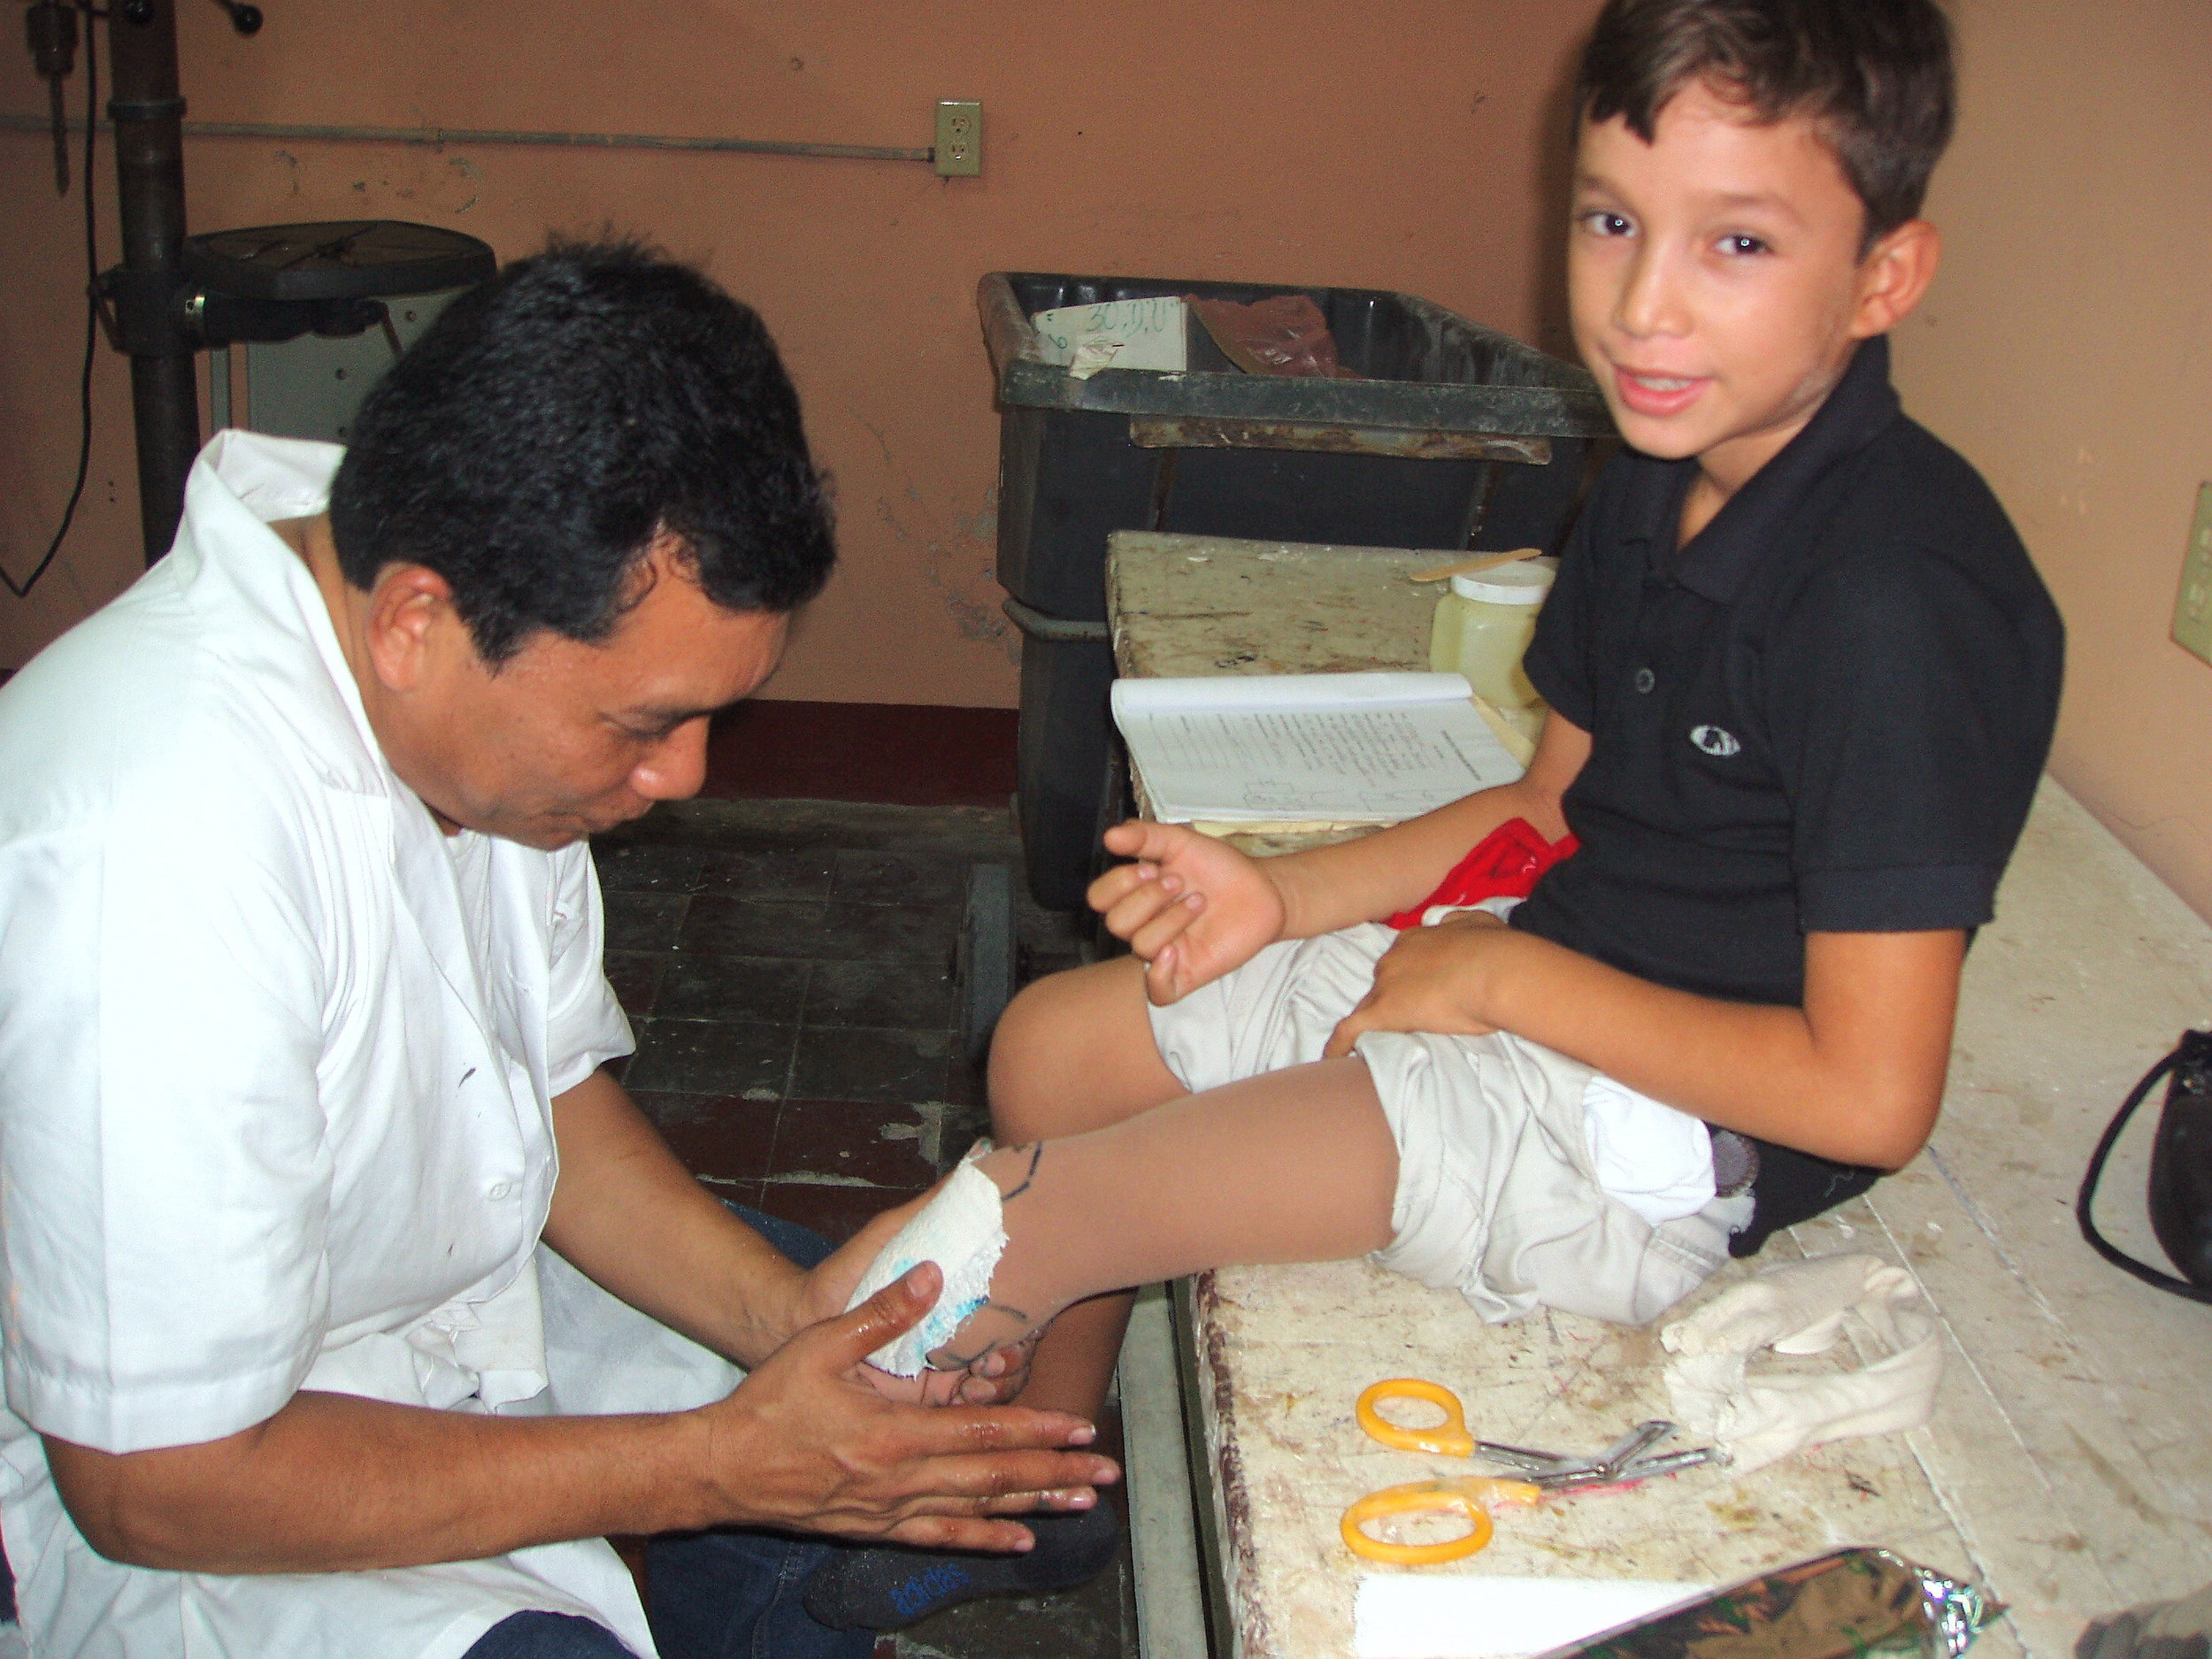 One of the Polus Center's first international projects in 1997 was the establishment of Walking Unidos, a small prosthetic clinic in Leon Nicaragua, which continues to operate today.